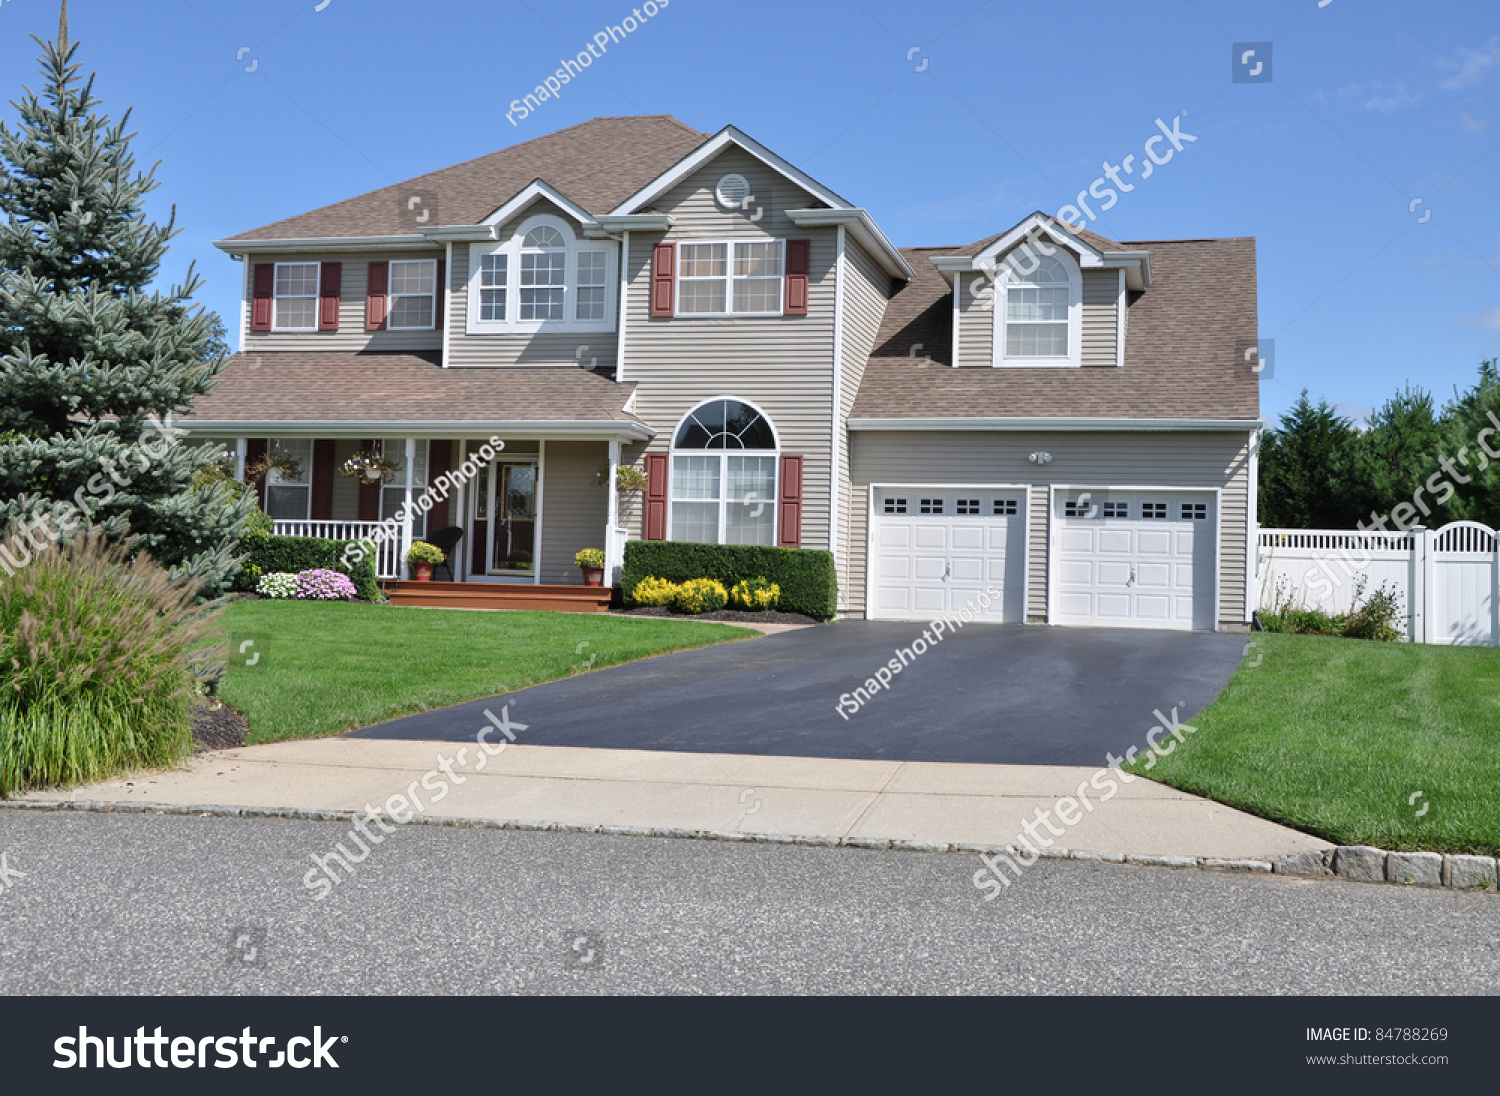 Large Two Story Two Car Garage Suburban Home Driveway